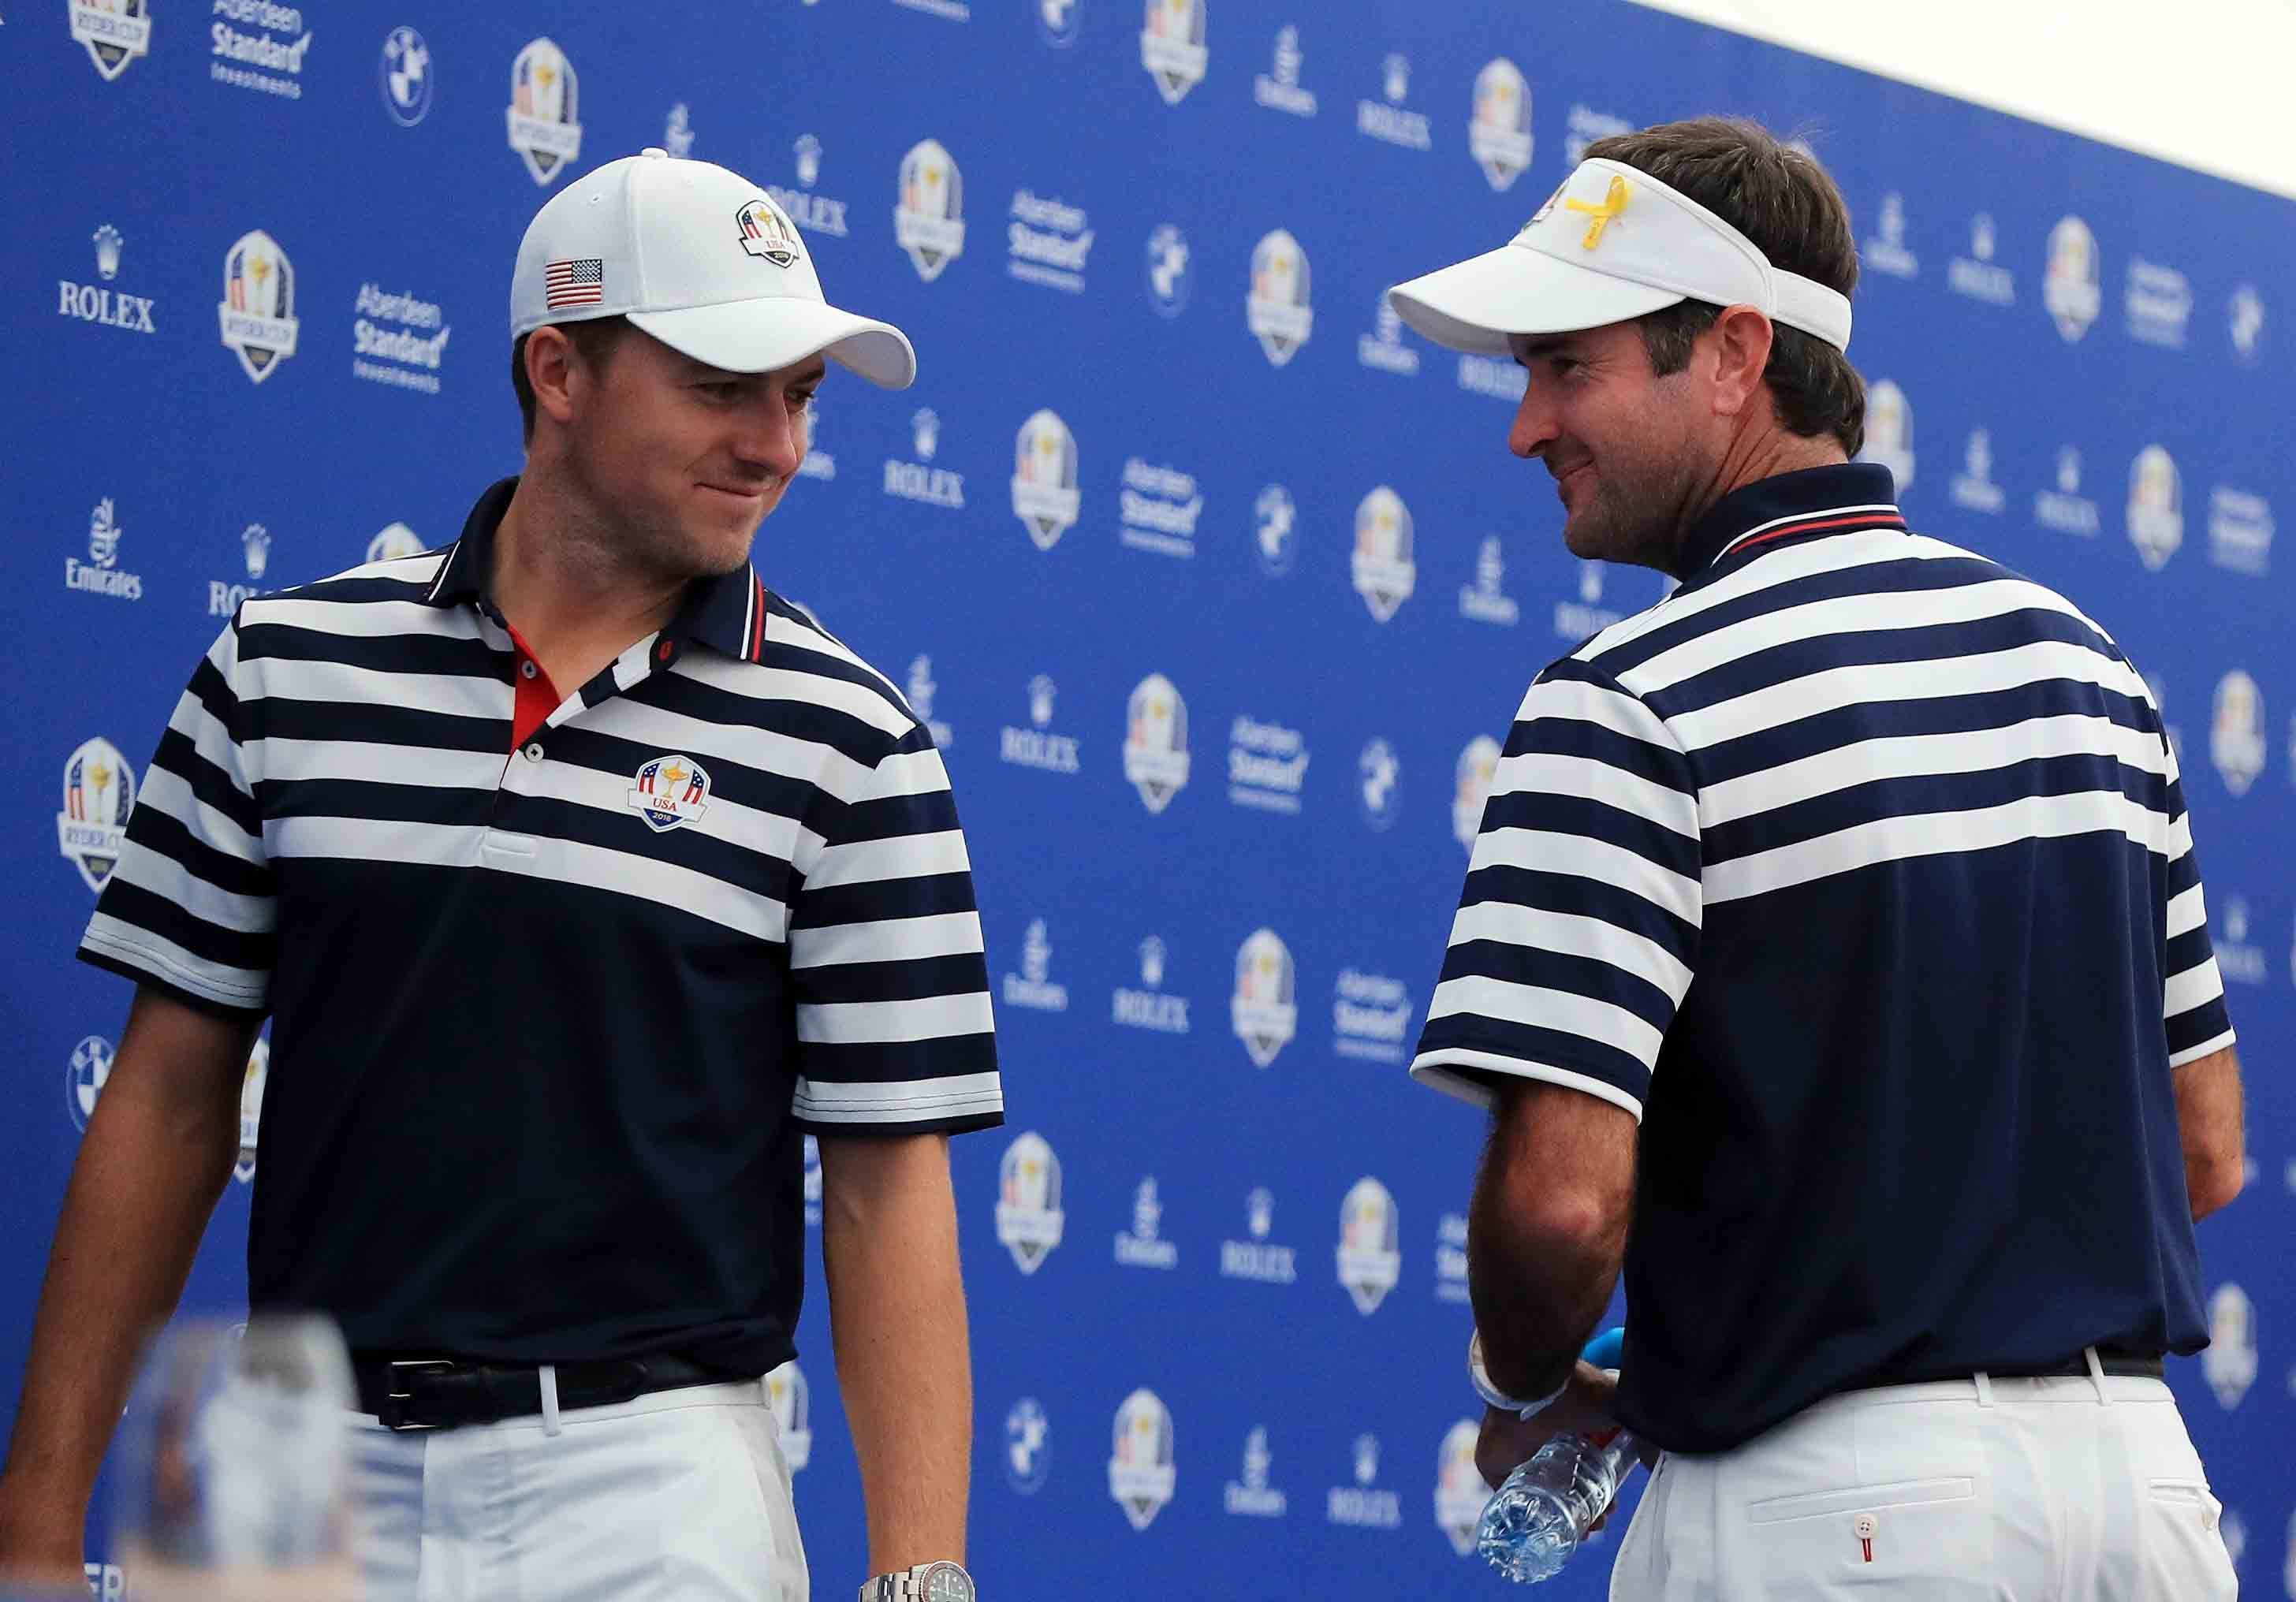 Jordan Spieth and Bubba Watson share the joke during their press conference at the Ryder Cup.